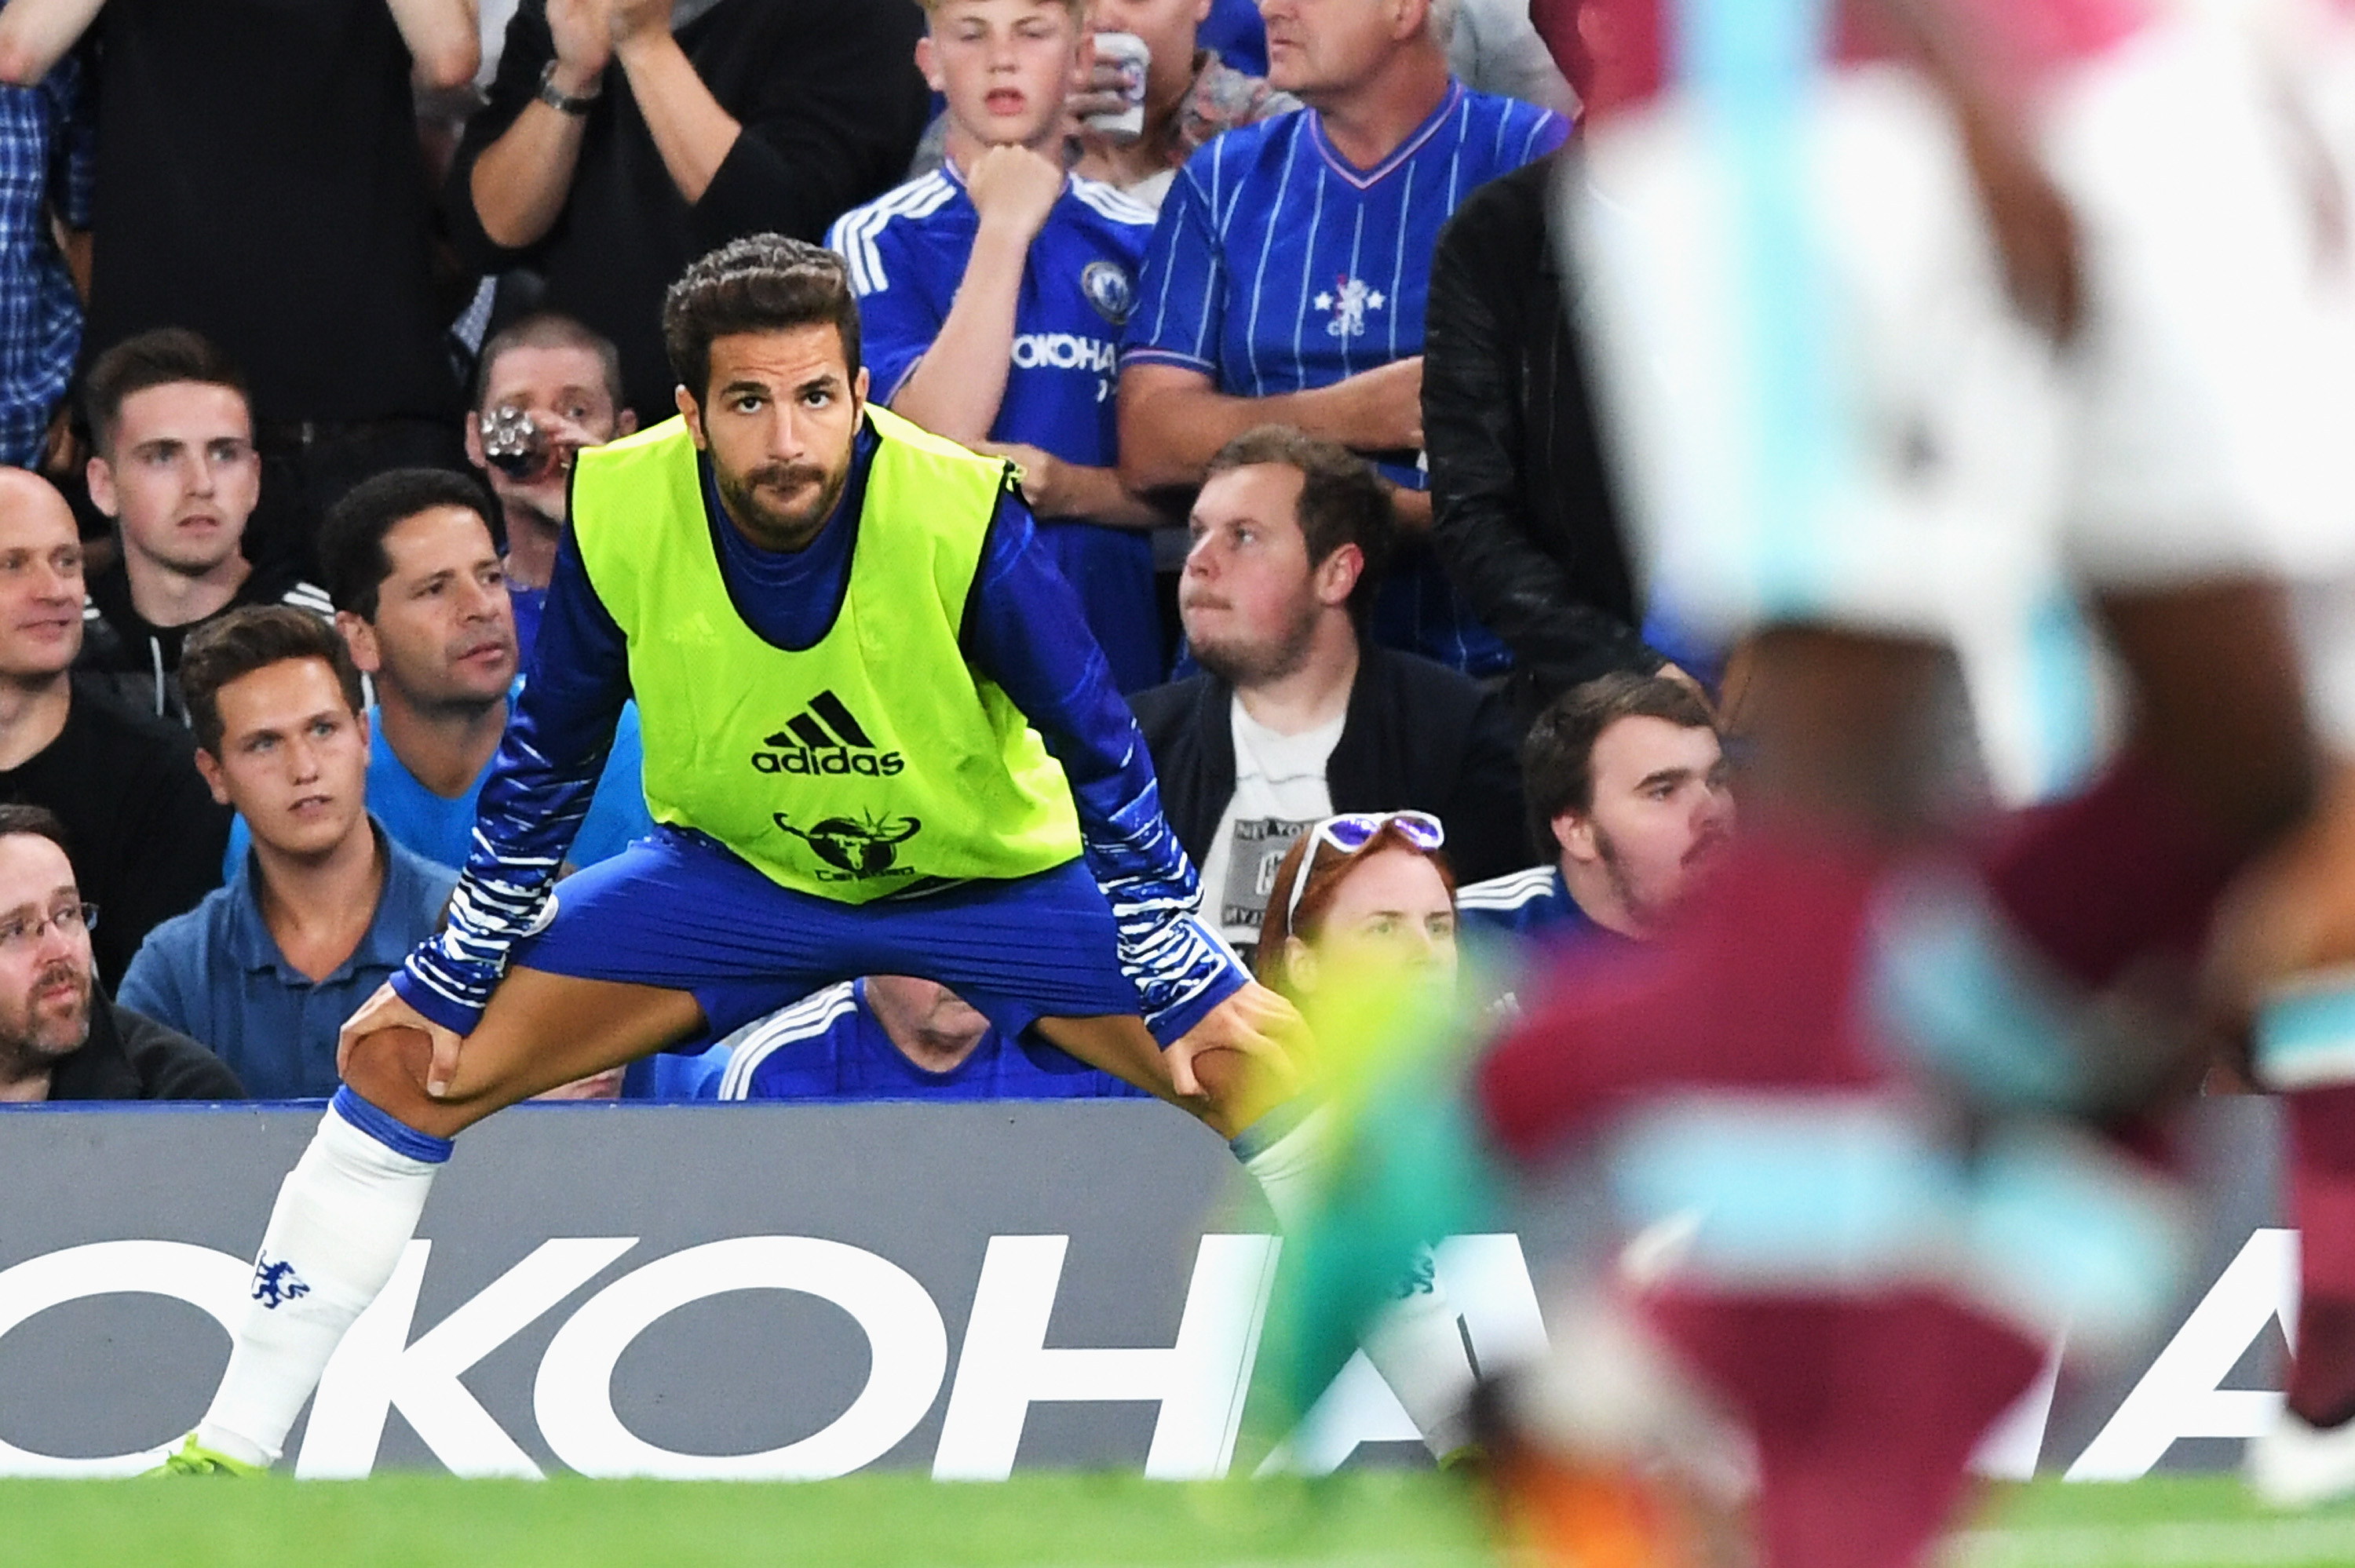 Chelsea: Loaning Cesc Fabregas to AC Milan would be inexplicable